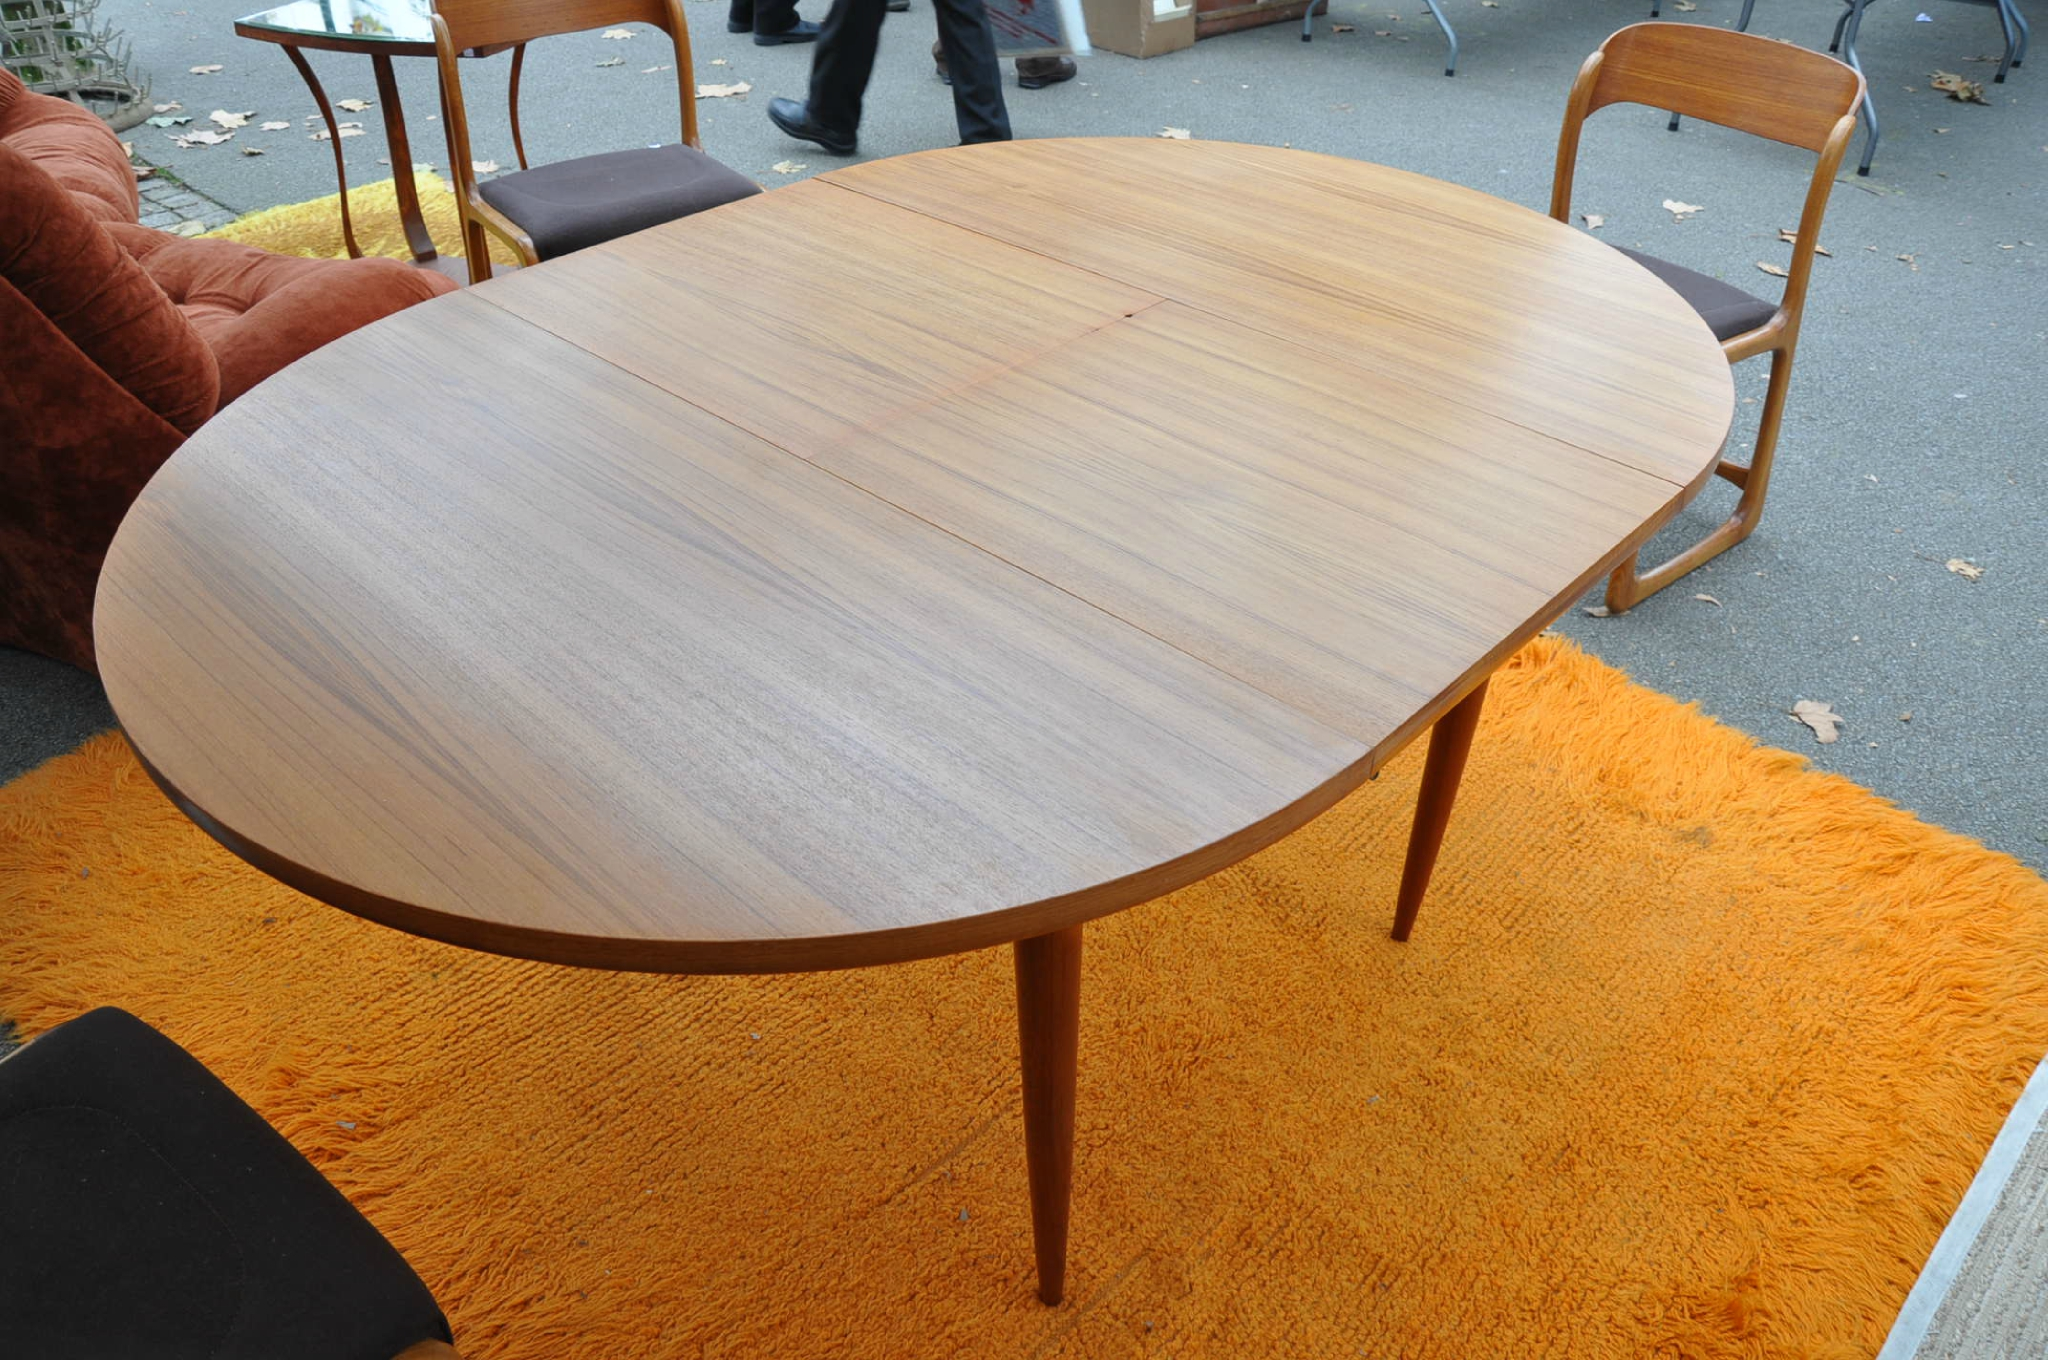 Table ronde teck de type scandinave article vendu antiquit s du vingti me - Table ronde transformable ...